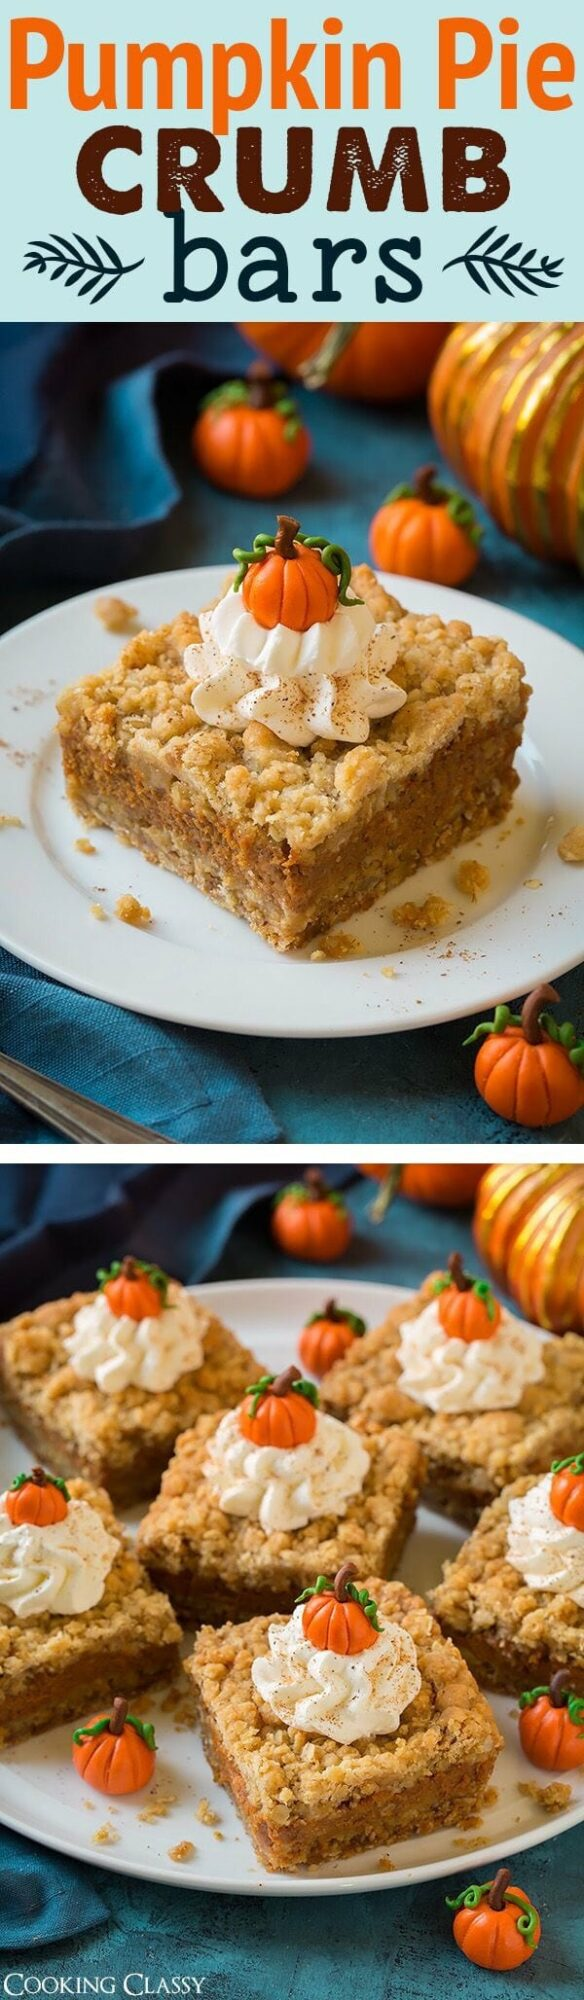 15 Pumpkin Spice Recipes for Fall (Part 1)